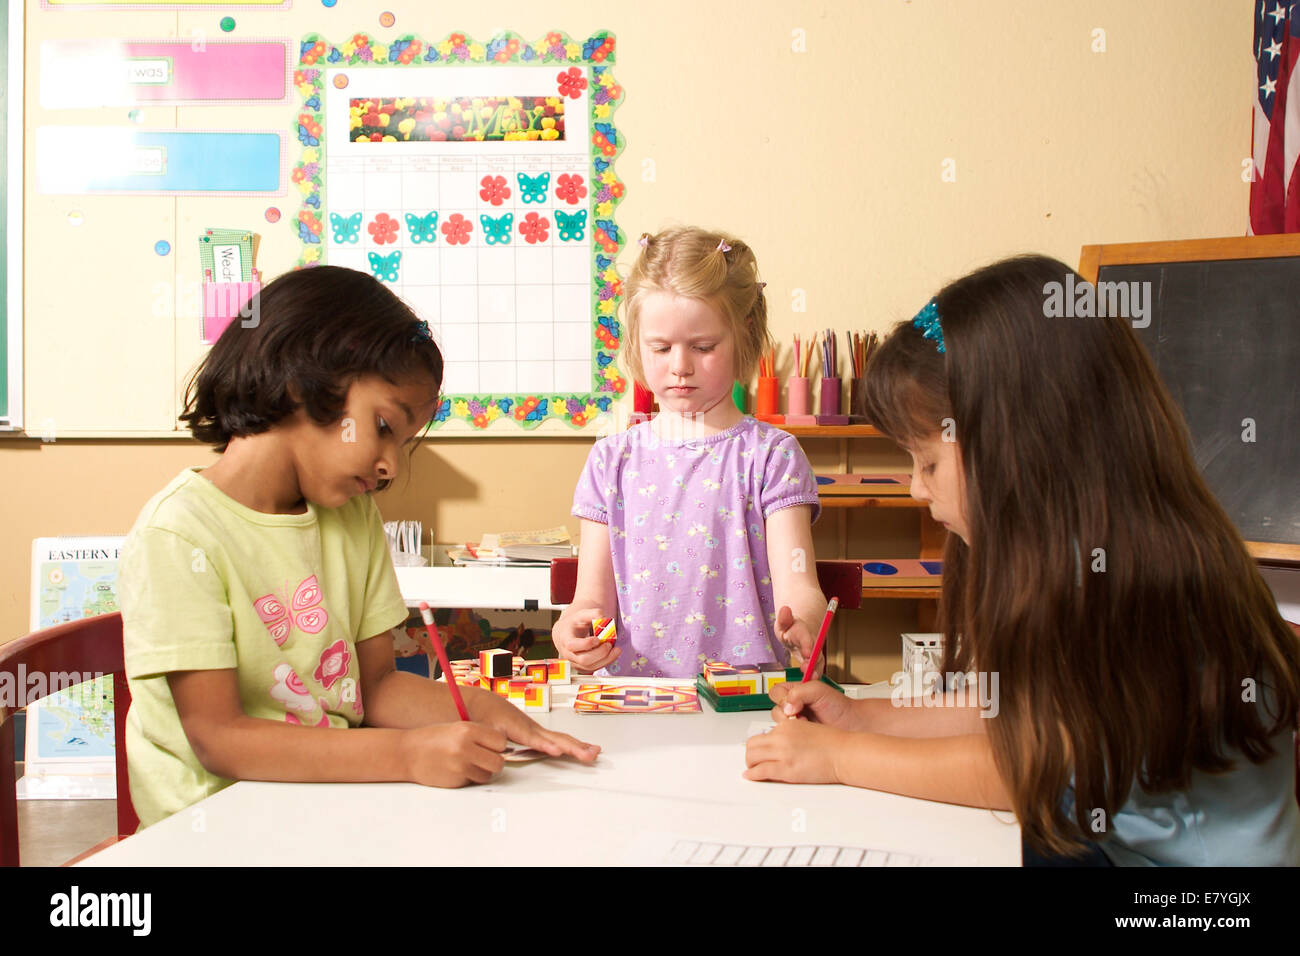 Kindergarten School Table Stock Photos Amp Kindergarten School Table Stock Images